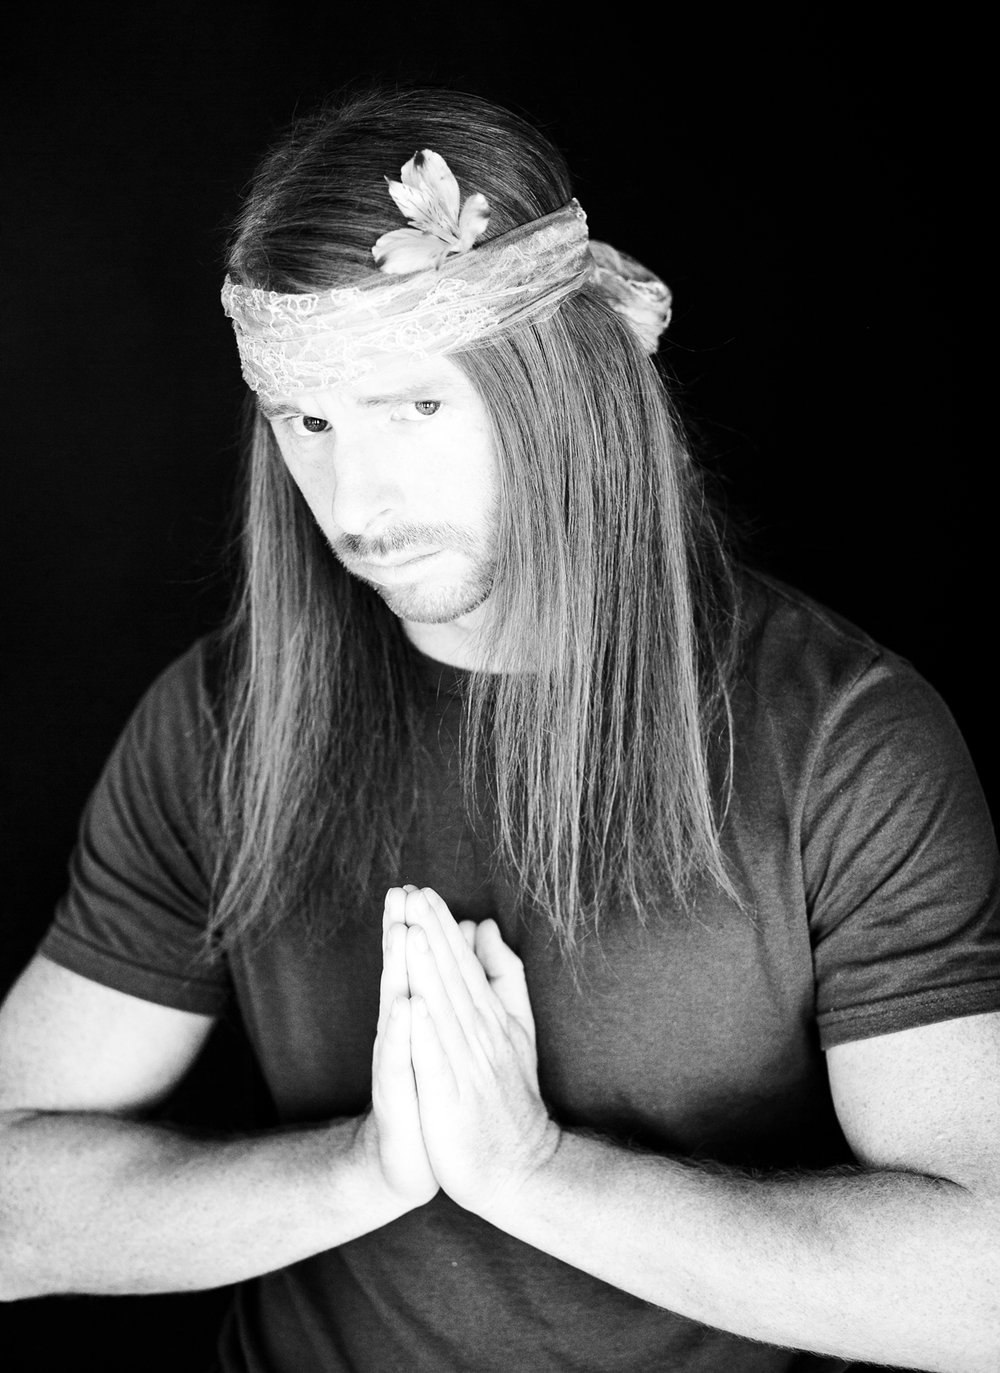 "JP Sears is an emotional healing coach, YouTuber, author, international teacher, speaker at events, world traveler, and curious student of life. His work empowers people to live more meaningful lives. JP is the author of ""How To Be Ultra Spiritual,"" (Sounds True Publishing, release date of March 7th, 2017).  He is very active with his online videos where he encourages healing and growth through his humorous and entertainingly informative videos, including his hit Ultra Spiritual comedy series, which has accumulated over 100 million views.  You can learn more about JP and his work at  AwakenWithJP.com .  p.s. JP's NEW BOOK ""How To Be Ultra Spiritual"" is available now!  Because he put his heart and soul into this book, it would mean A LOT to him if you grabbed a copy for yourself."